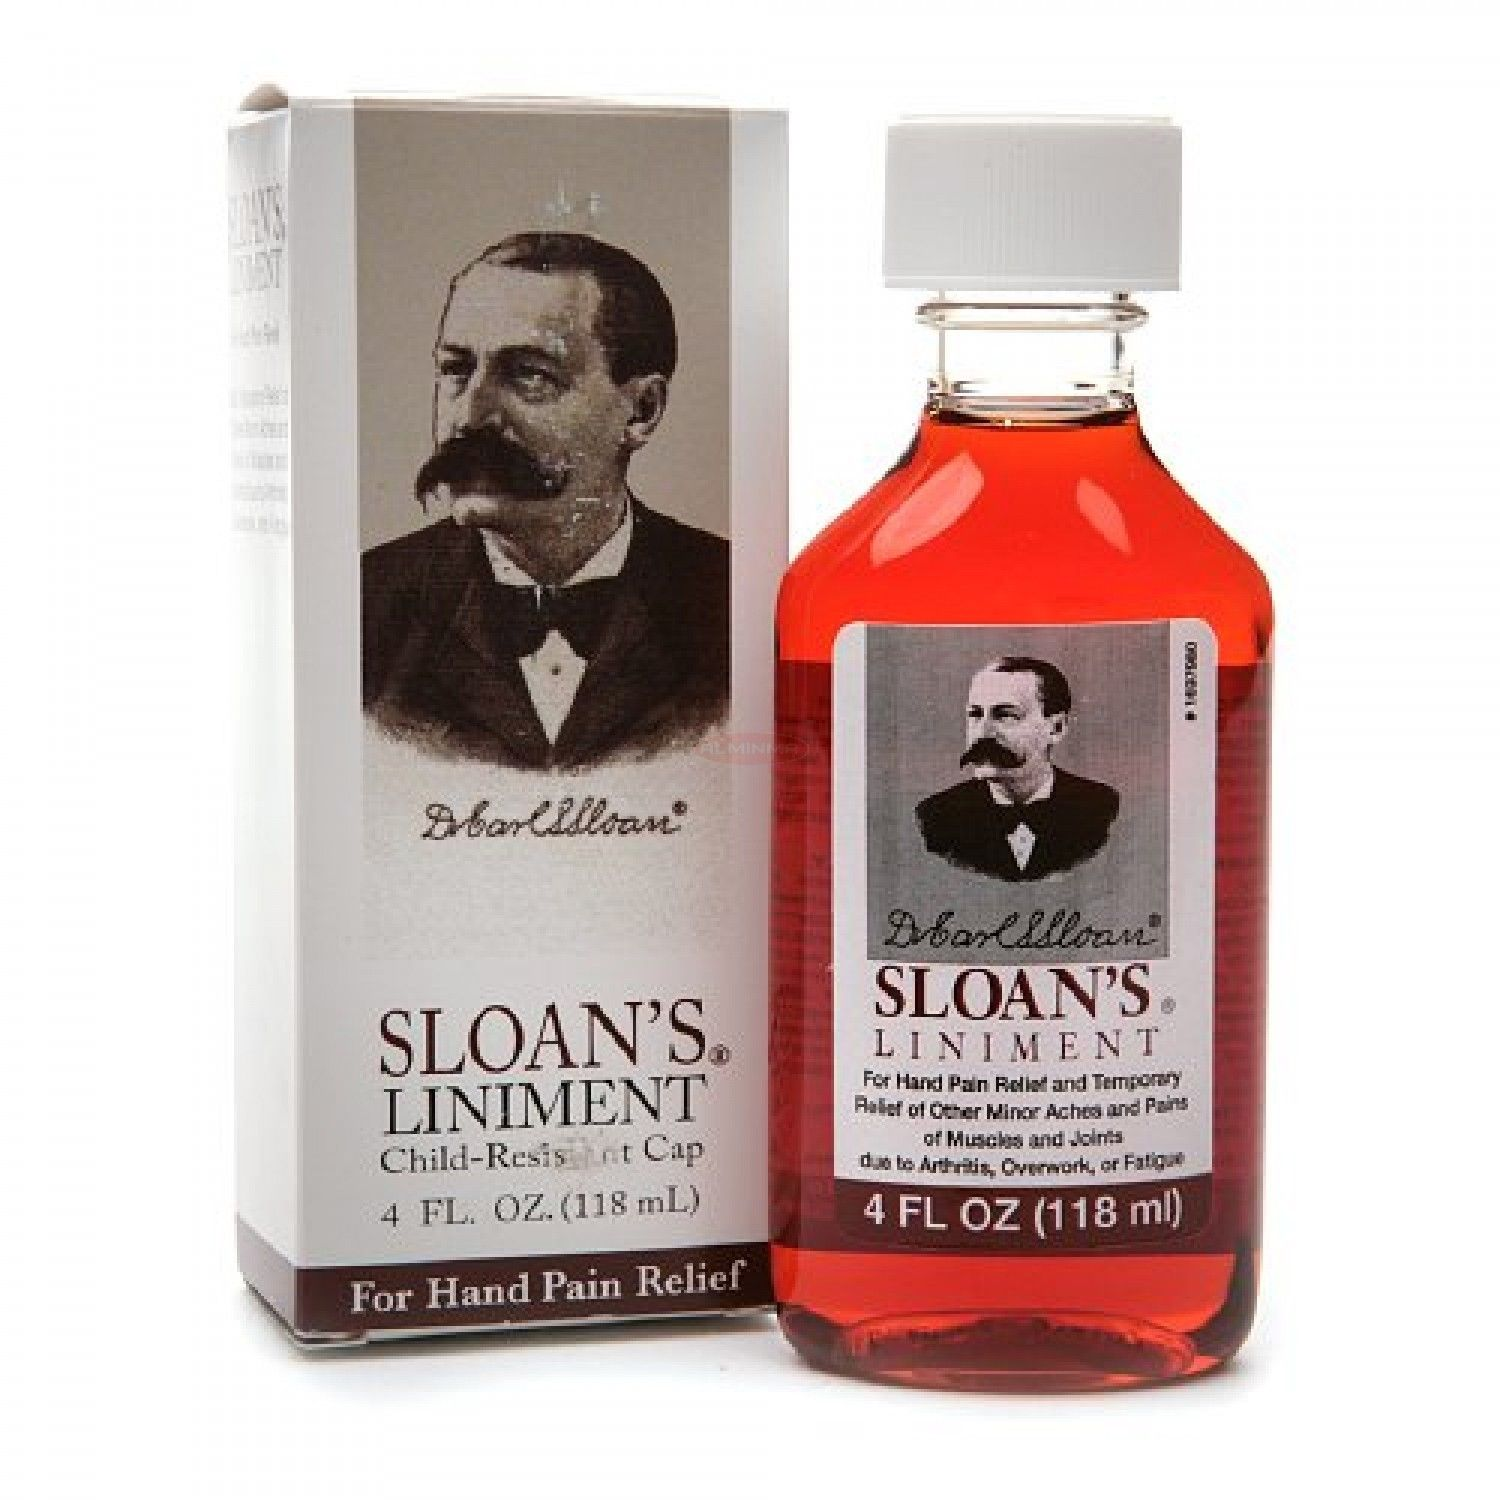 2 Pack - Sloan's Liniment For Hand Pain Relief 4oz Each